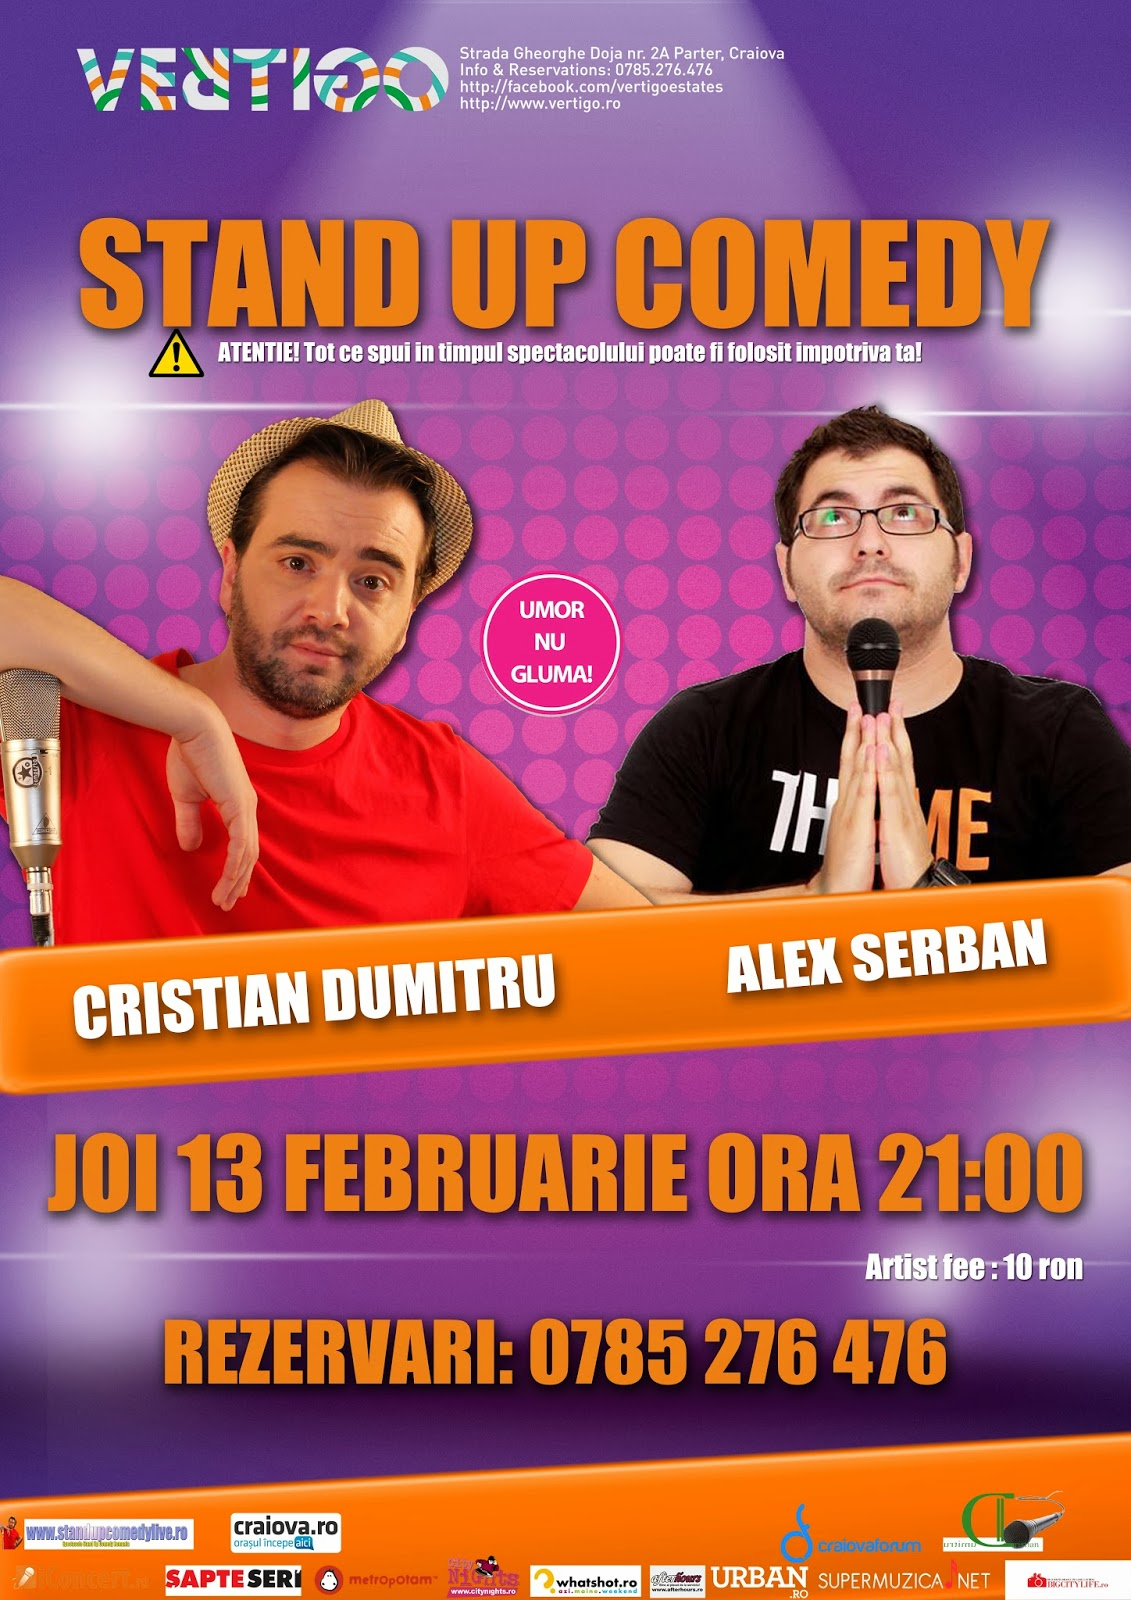 stand up comedy craiova romania